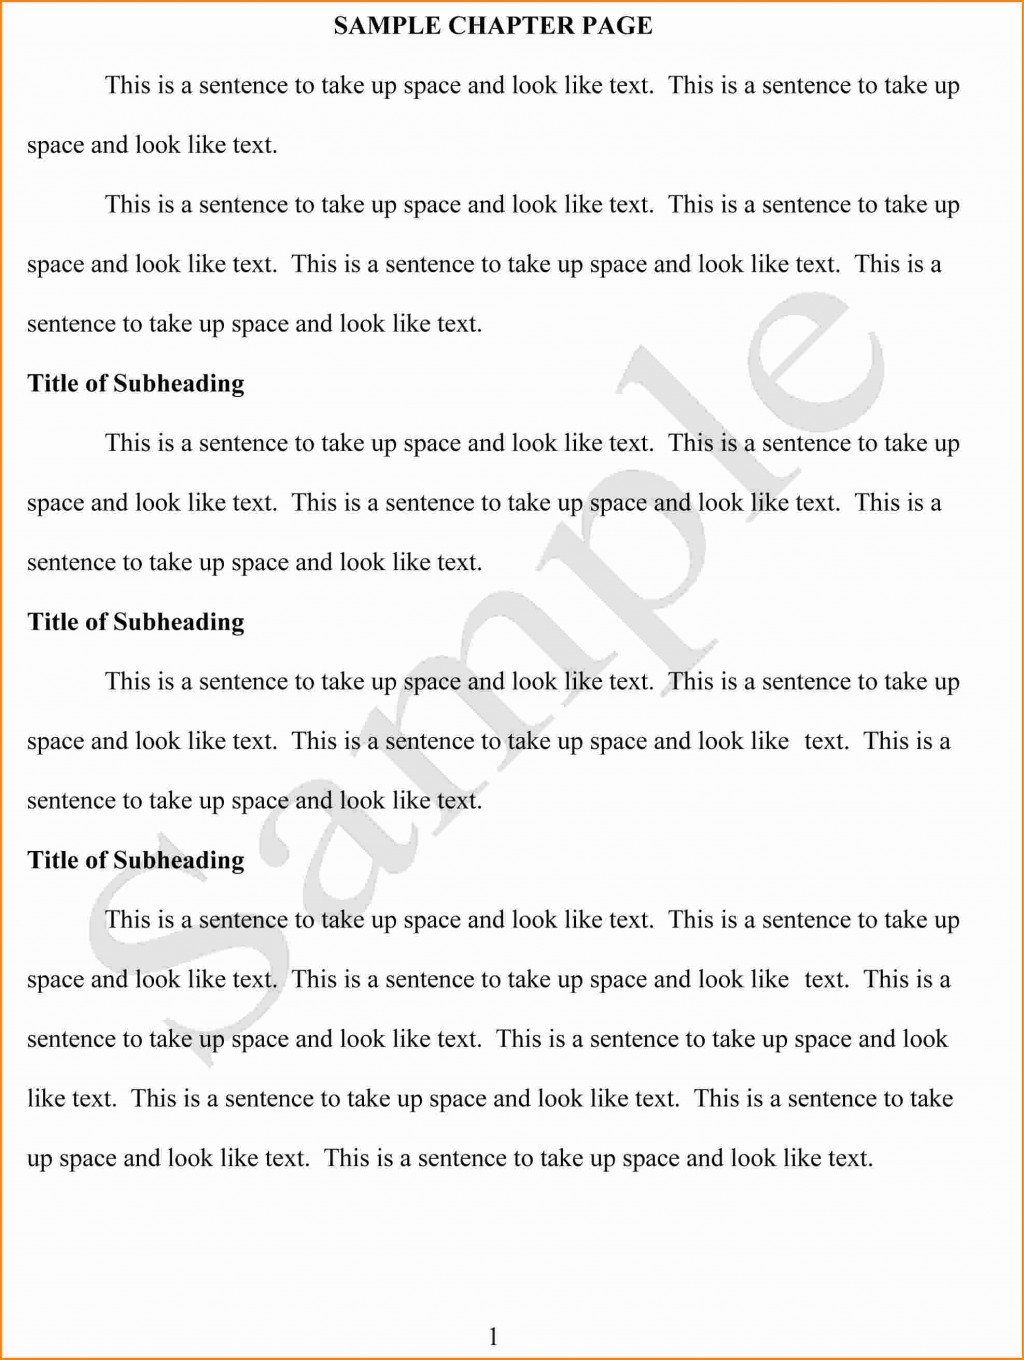 020 Research Paper How To Start Frightening Paragraph Your First Body In A Conclusion Large